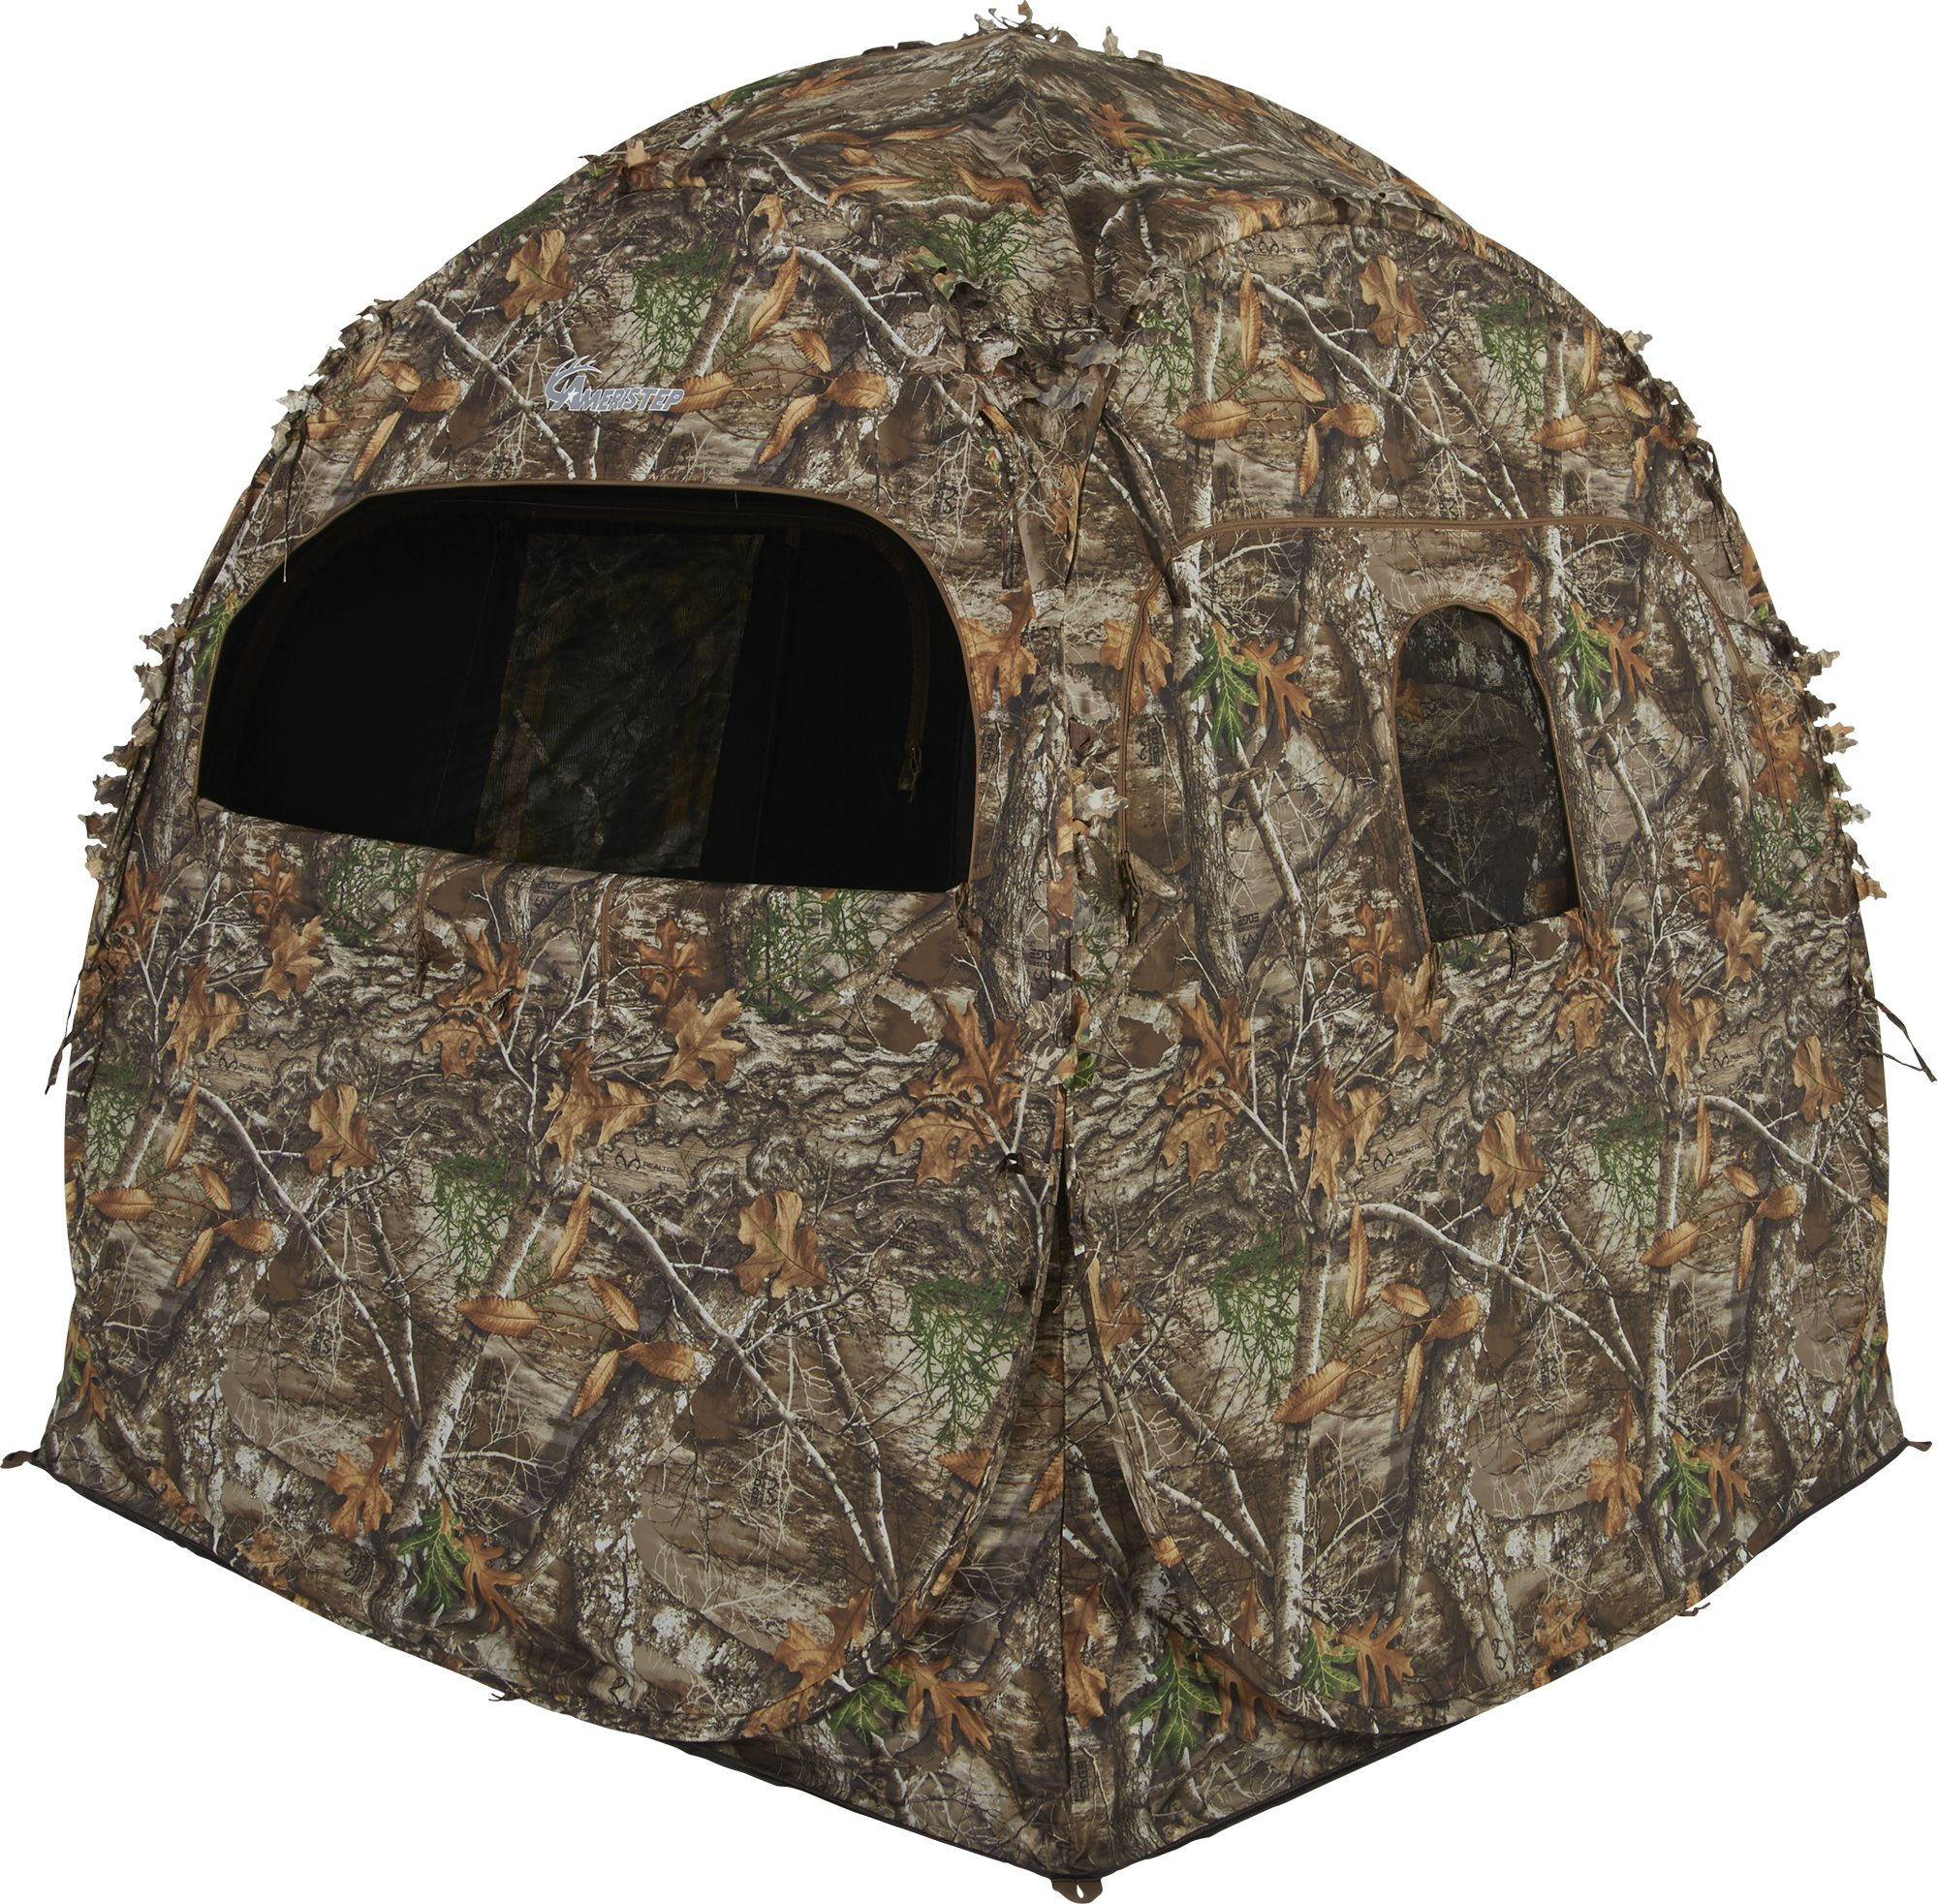 blind ground gallery prev blinds person camouflage hunting archery bowhunting outhouse tent deer